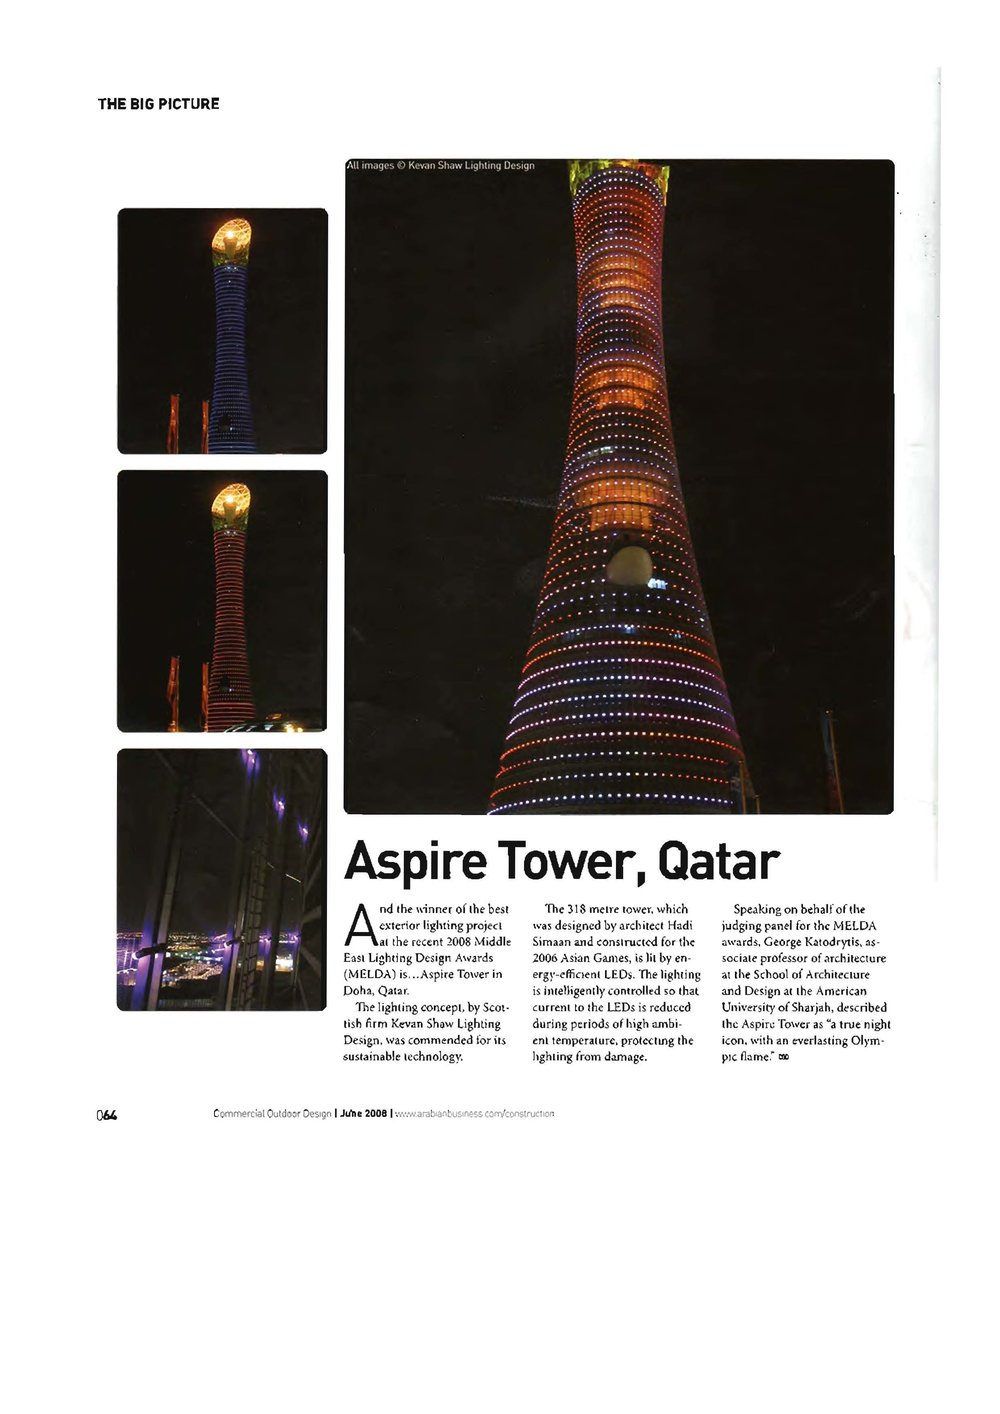 Aspire Tower